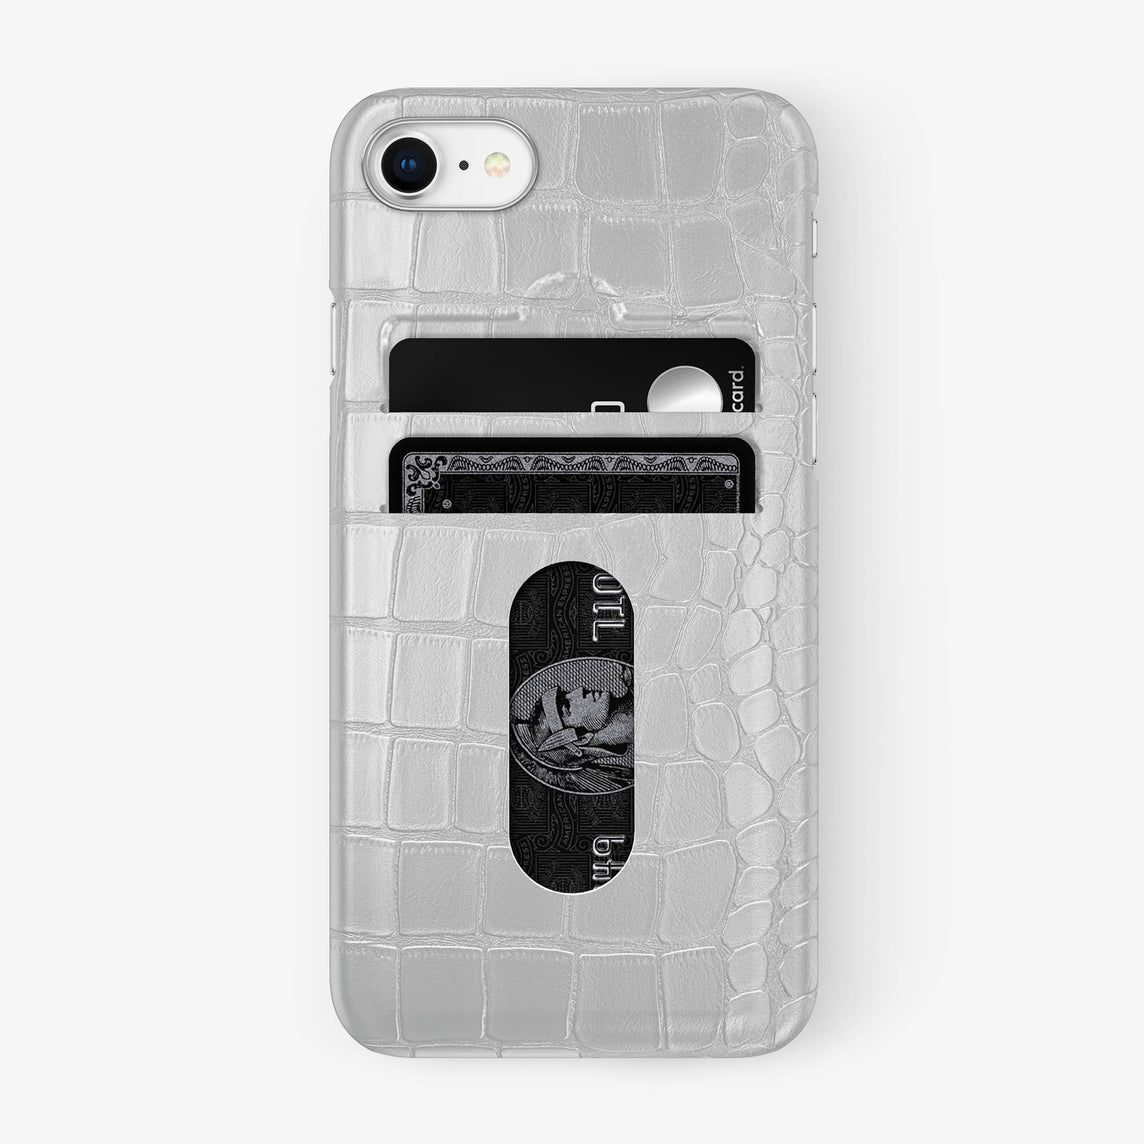 Alligator Card Holder Case iPhone 7/8 | White - Stainless Steel - Hadoro